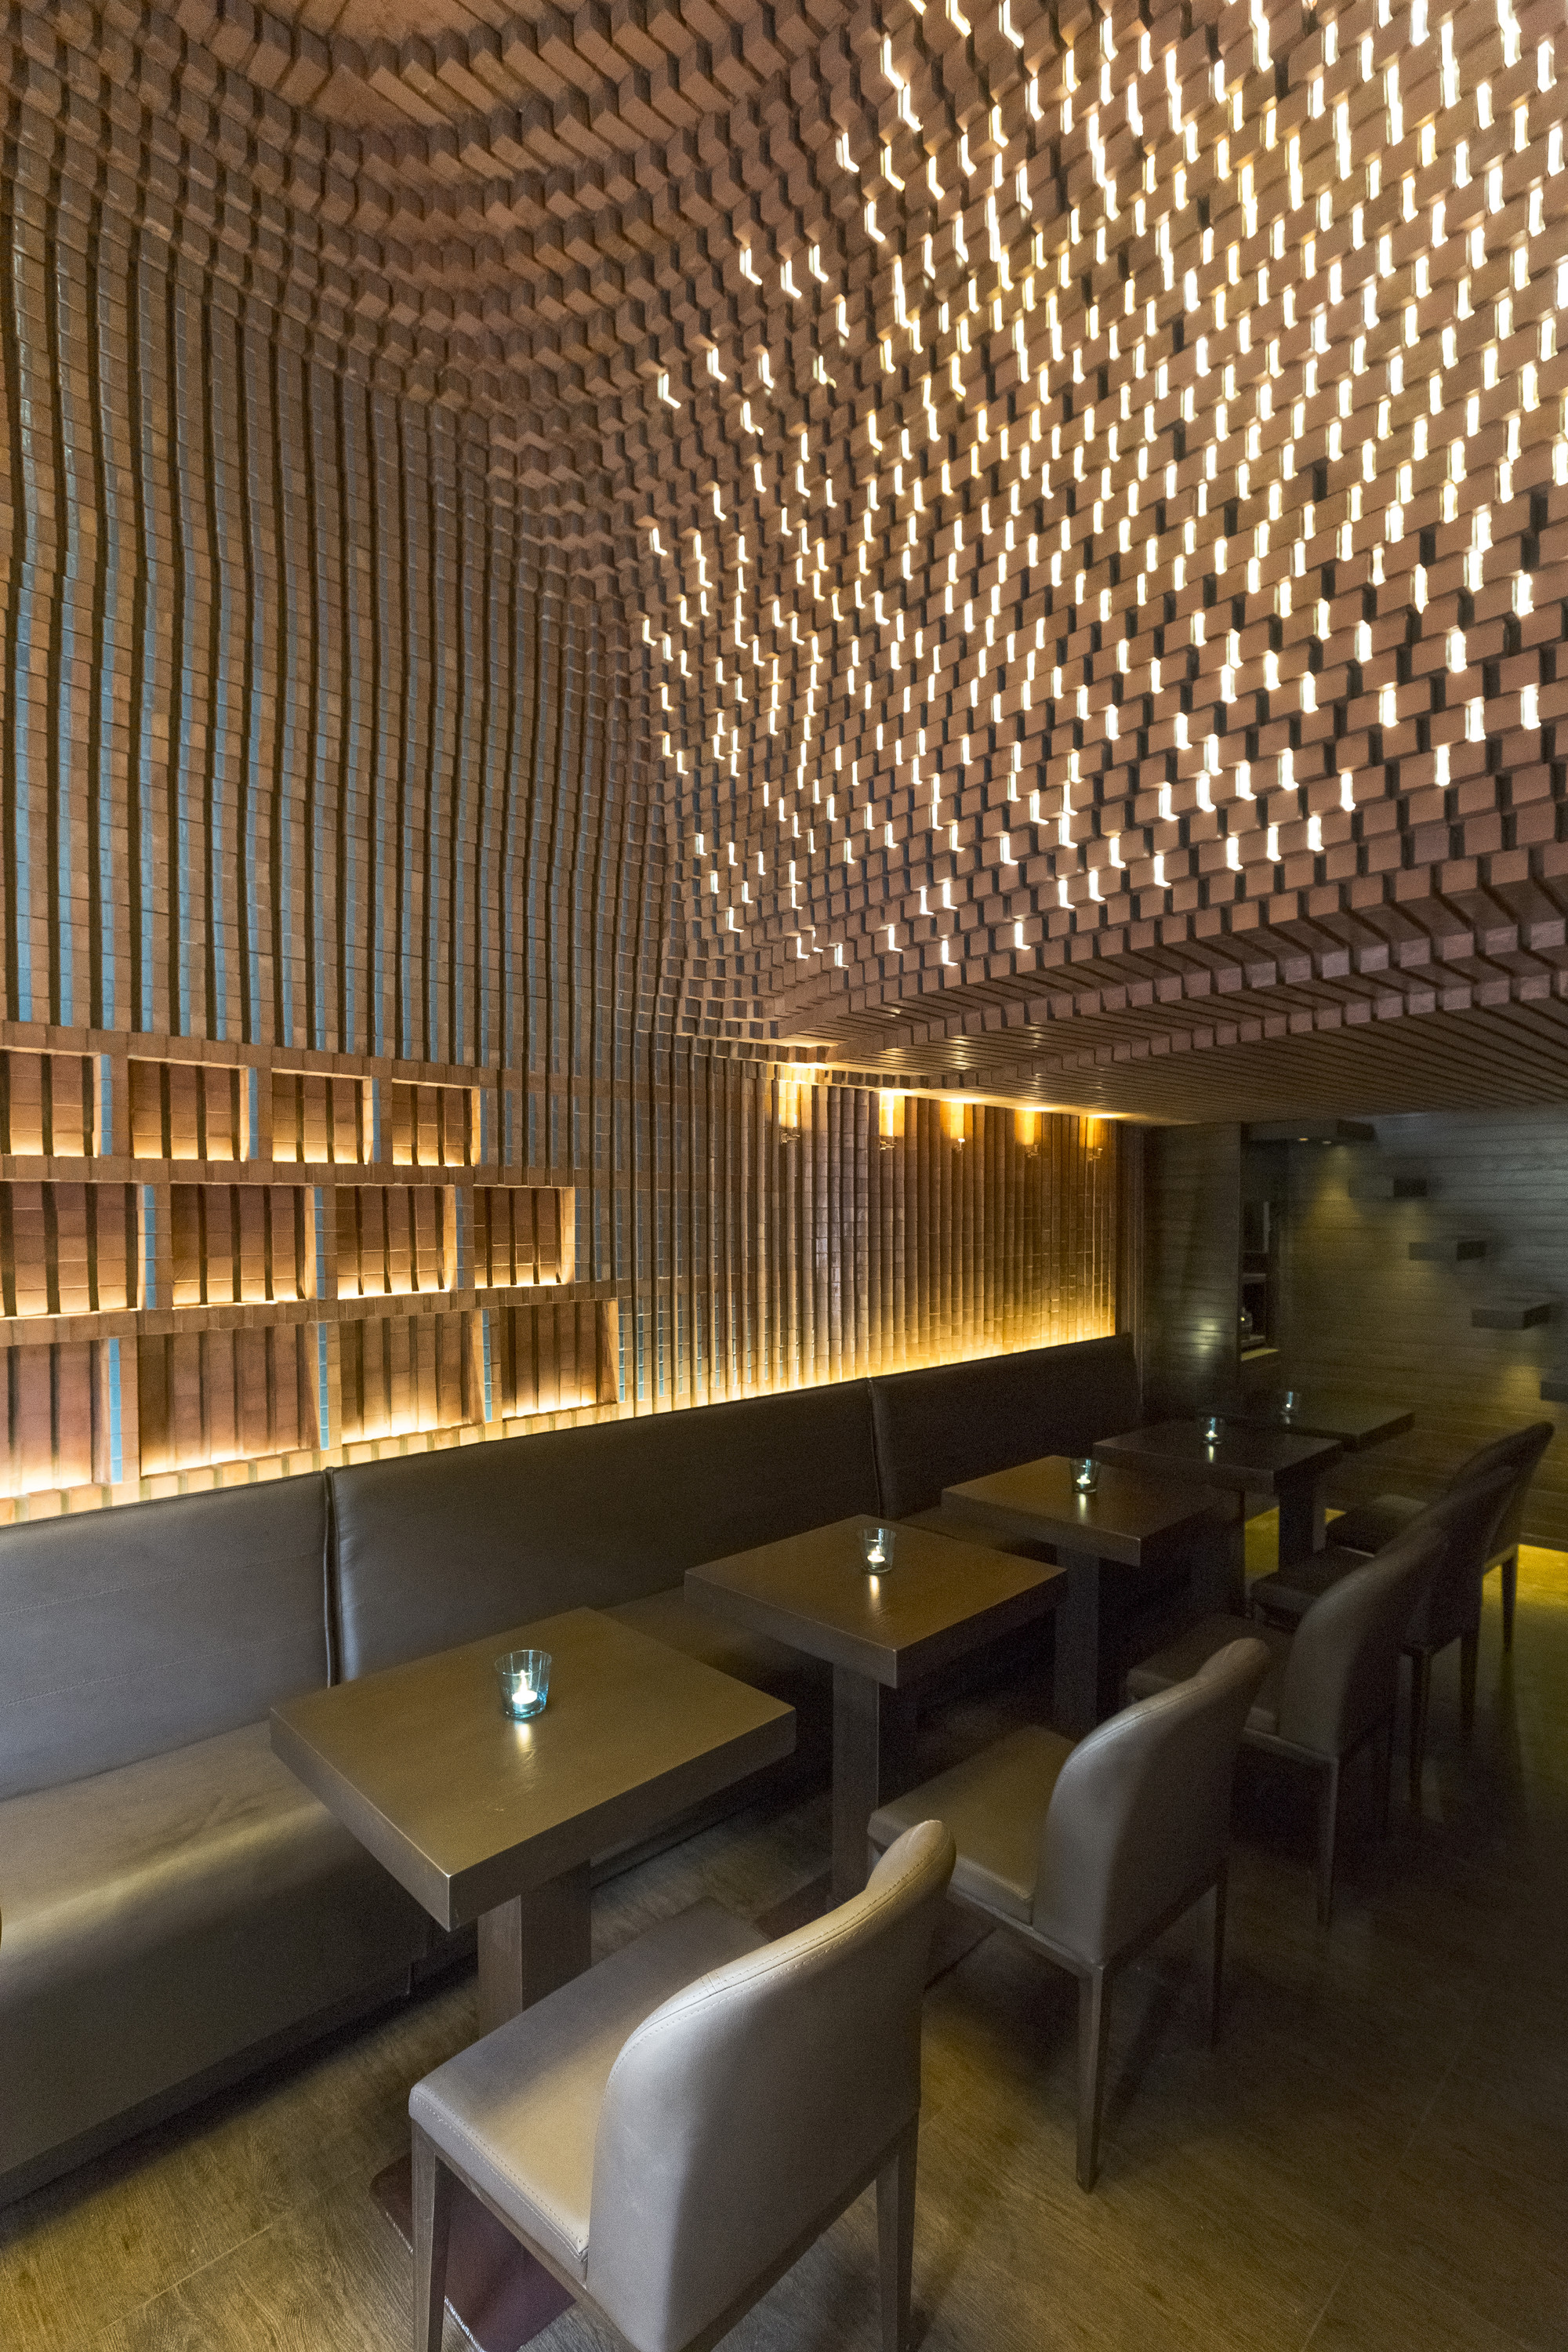 Espriss caf hooba design group archdaily for Interiores de restaurantes